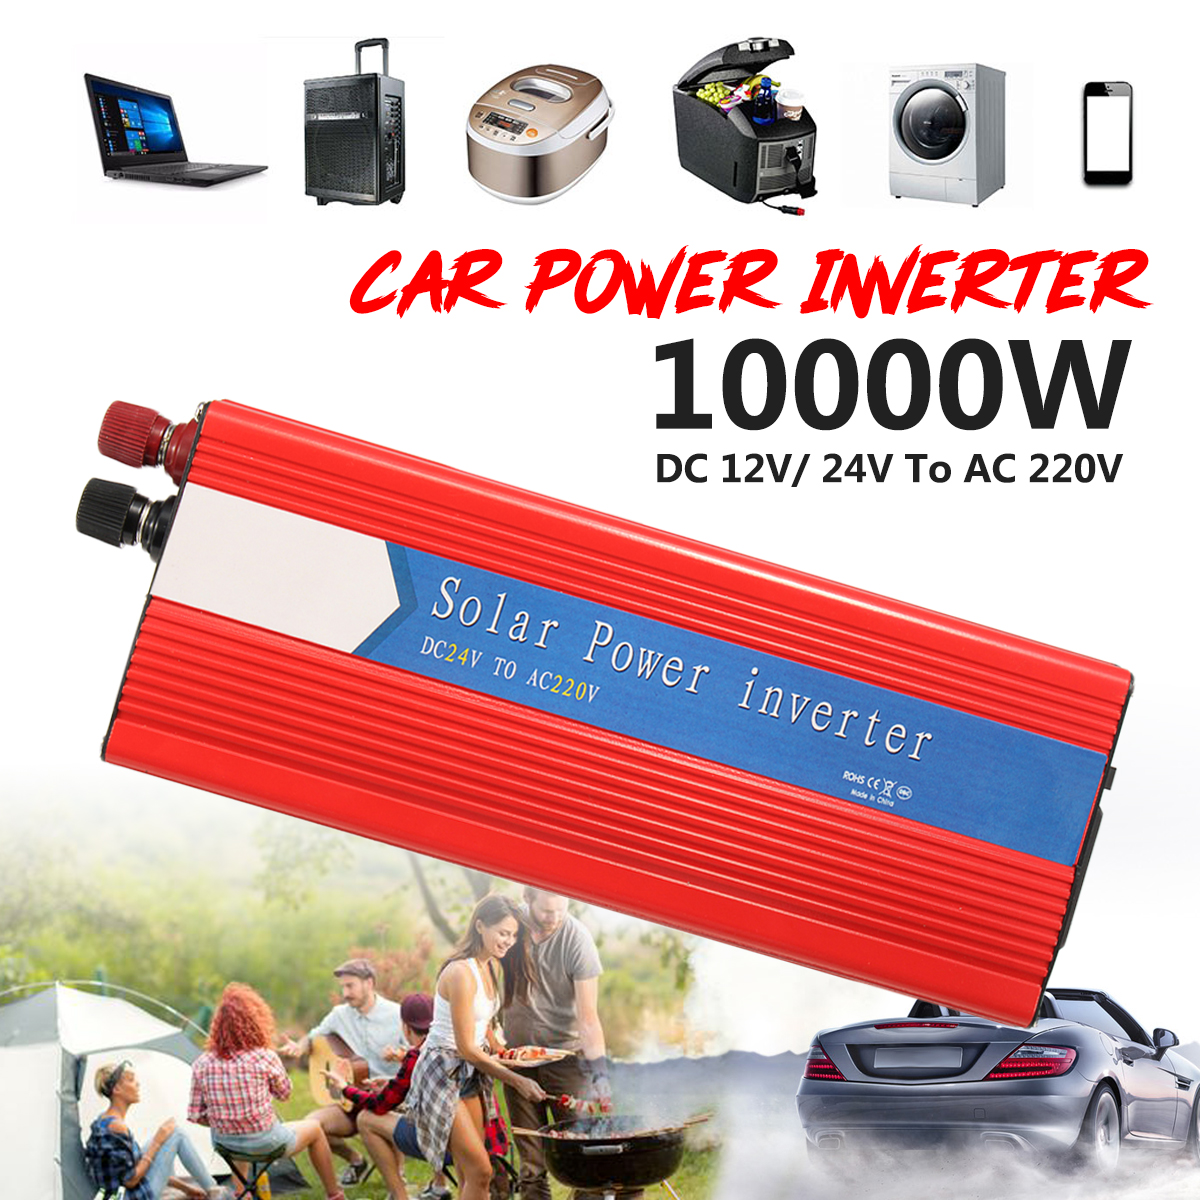 PEAK 10000W 12/24V To AC 220/110V Voltage Transformer Car Power Inverter Converter USB Modified Sine Wave Universal Intelligent 12 24v to ac 220 110v car power inverter converter peak 10000w usb modified sine wave voltage transformer universal intelligent